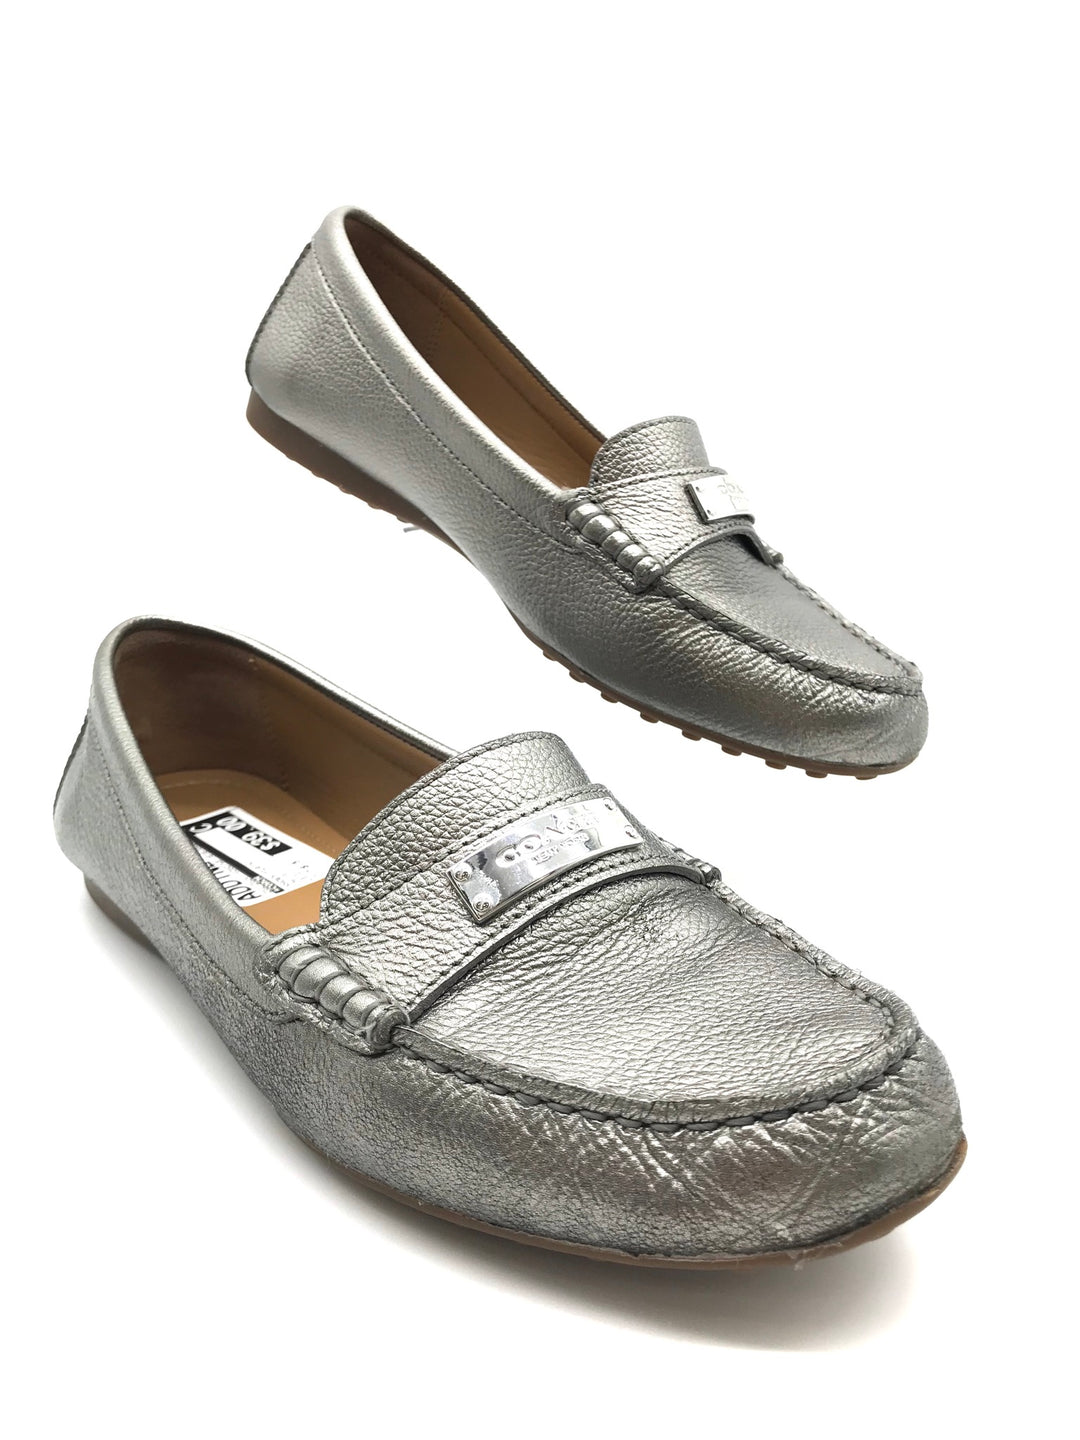 Primary Photo - BRAND: COACH <BR>STYLE: SHOES FLATS <BR>COLOR: METALLIC <BR>SIZE: 8.5 <BR>SKU: 262-26241-40507<BR>IN GOOD SHAPE AND CONDITION